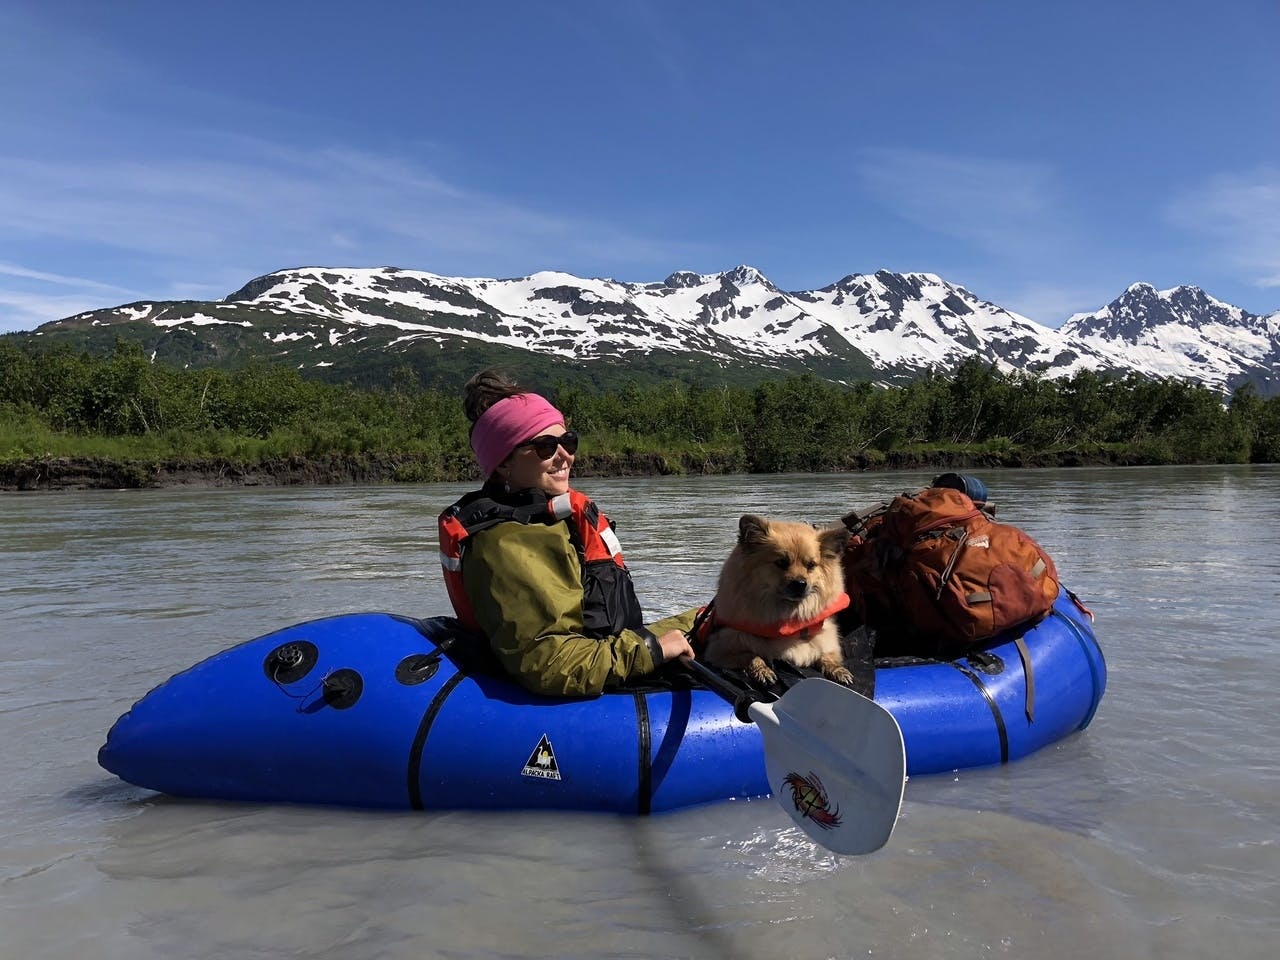 """Aimee Chauvot: """"Leo's First Float: Adam White captured this picture of his wife, Aimee, and fur-baby Leo, on the Placer River float in Alaska this summer. She (the dog) was a natural!"""""""